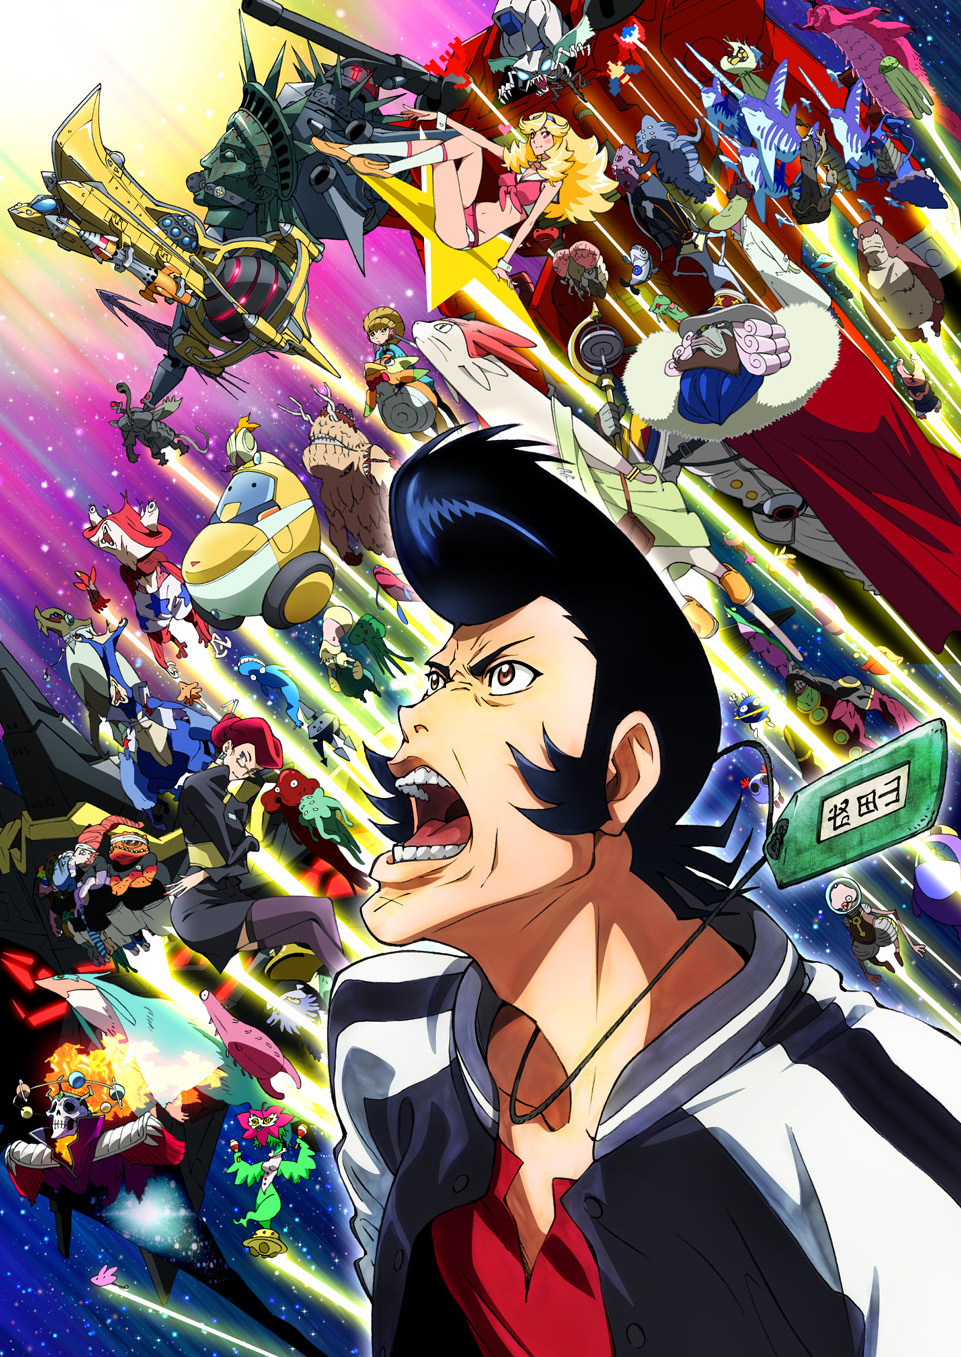 Cowboy Bebop Director To Helm New Anime Series Space Dandy Coming Cartoon Network